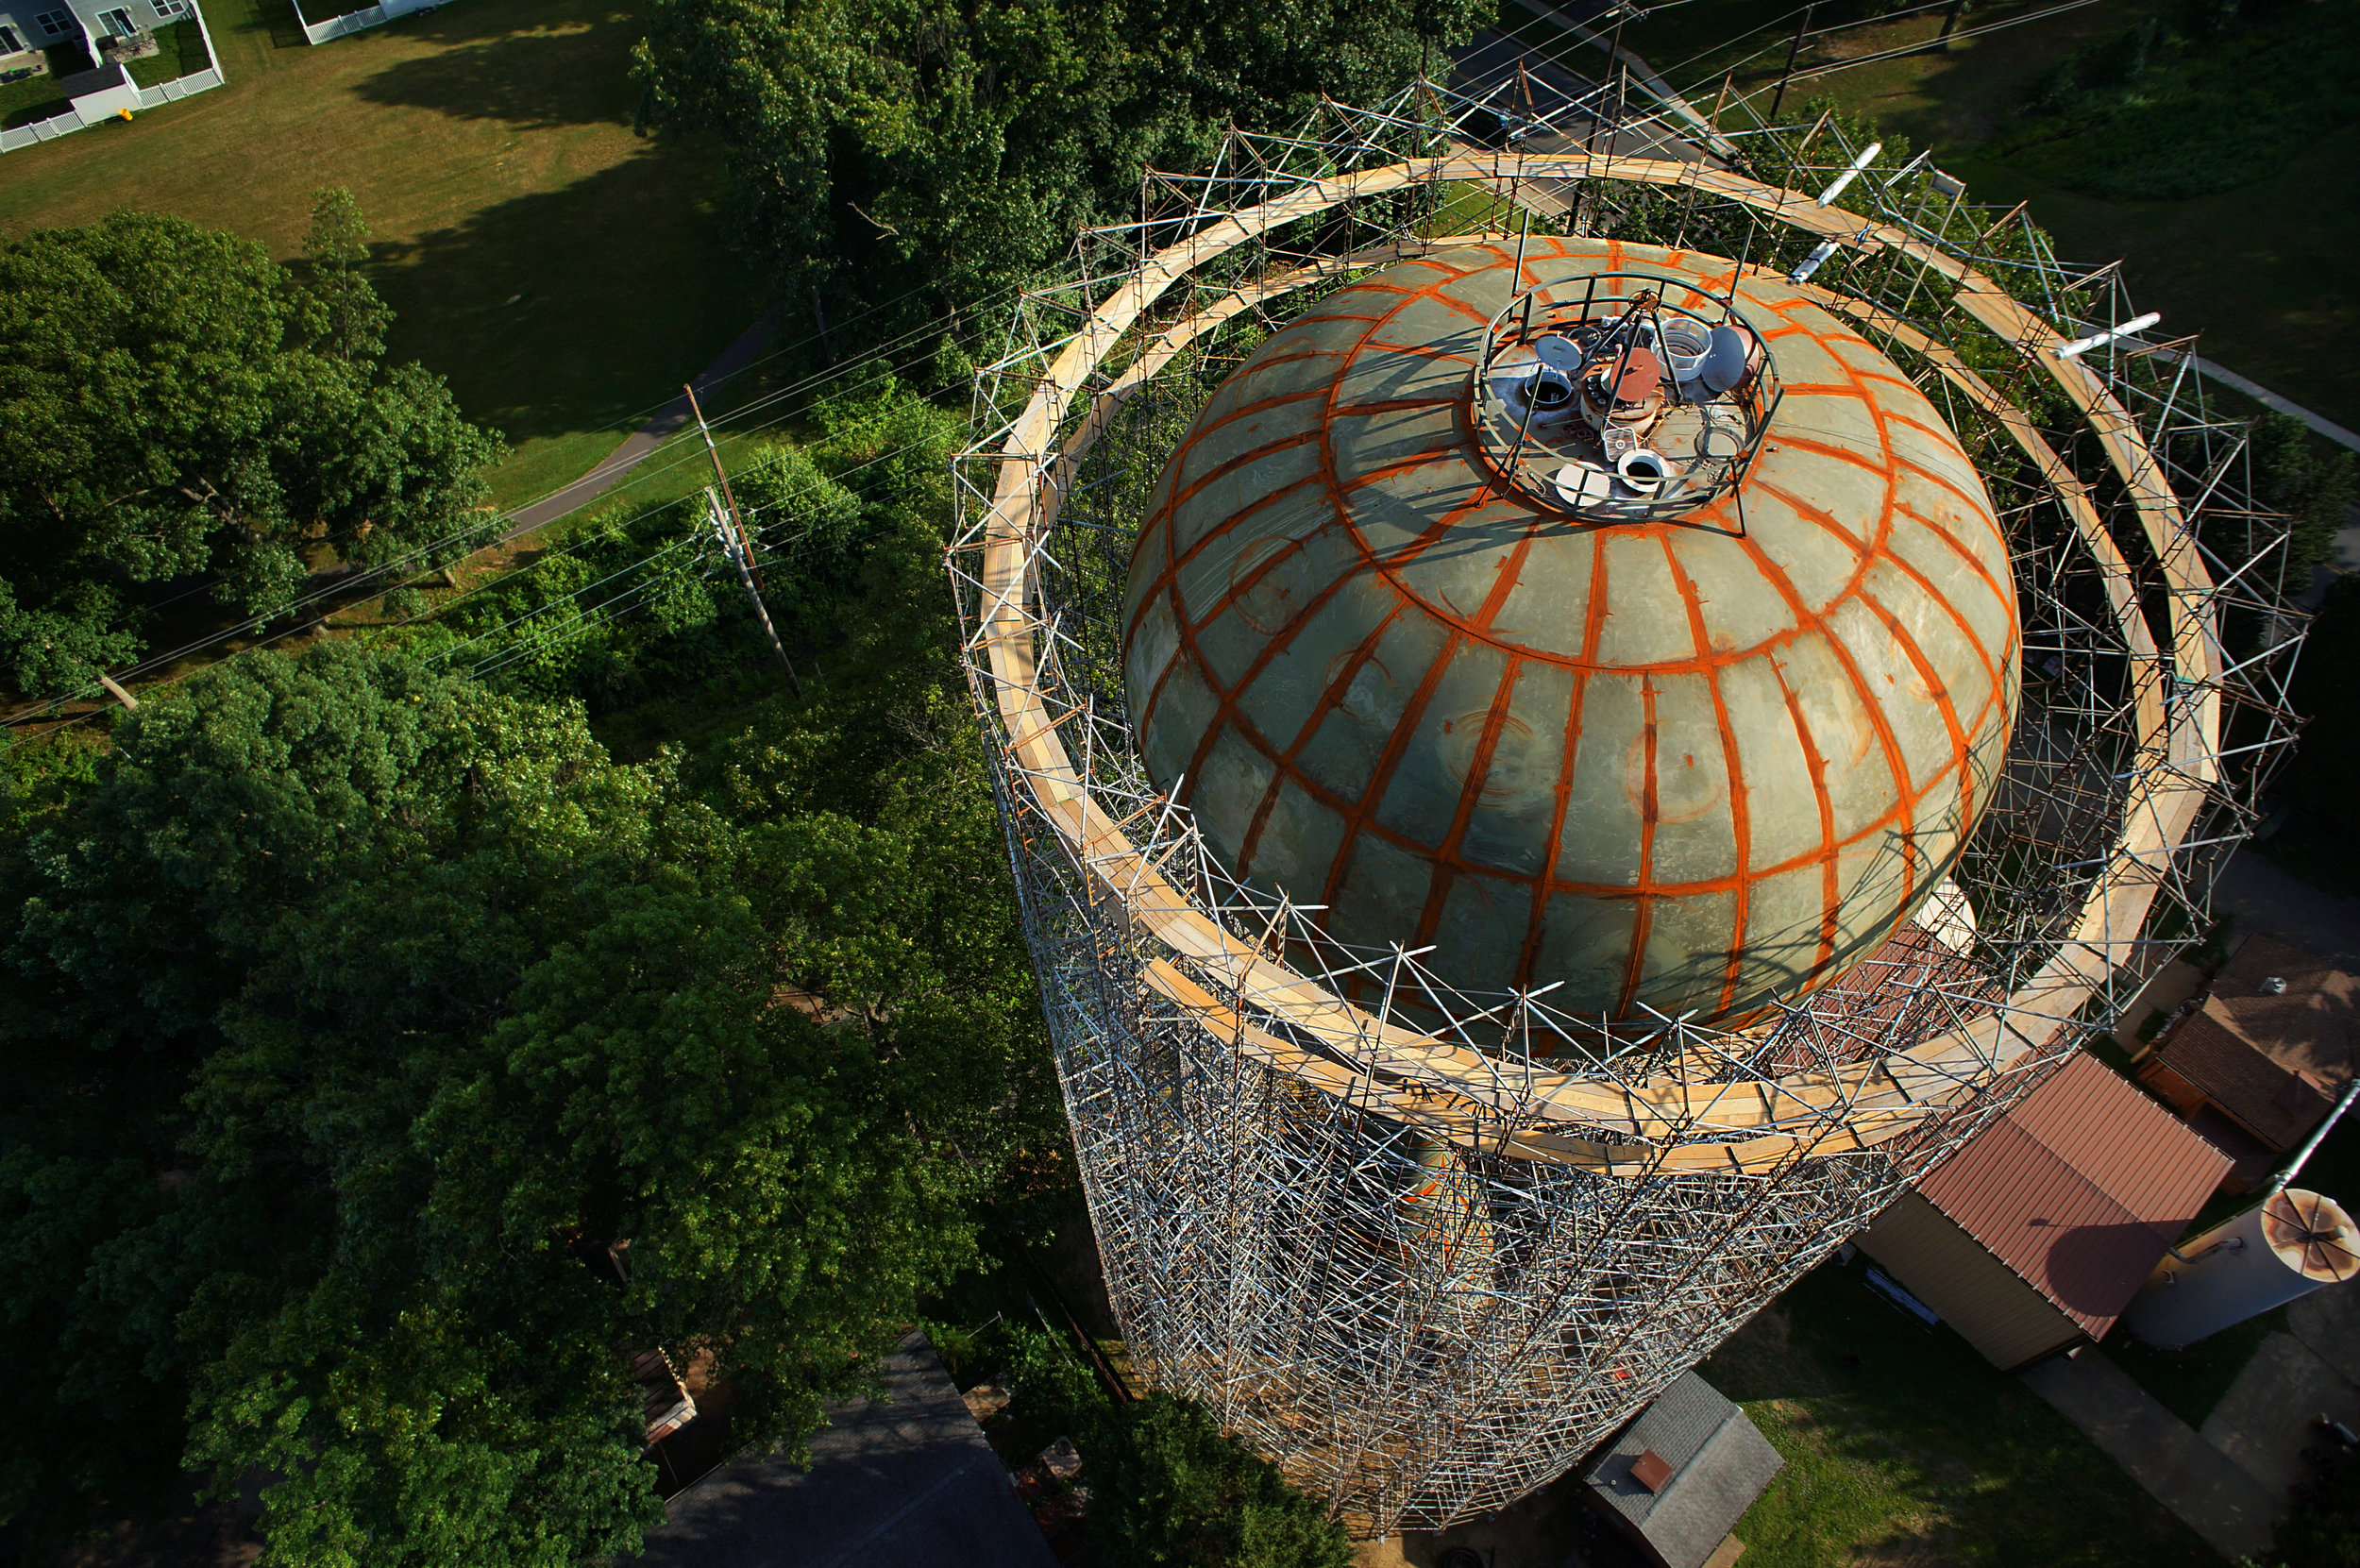 140626-Propellerheads-Centerpoint Watertower.jpg